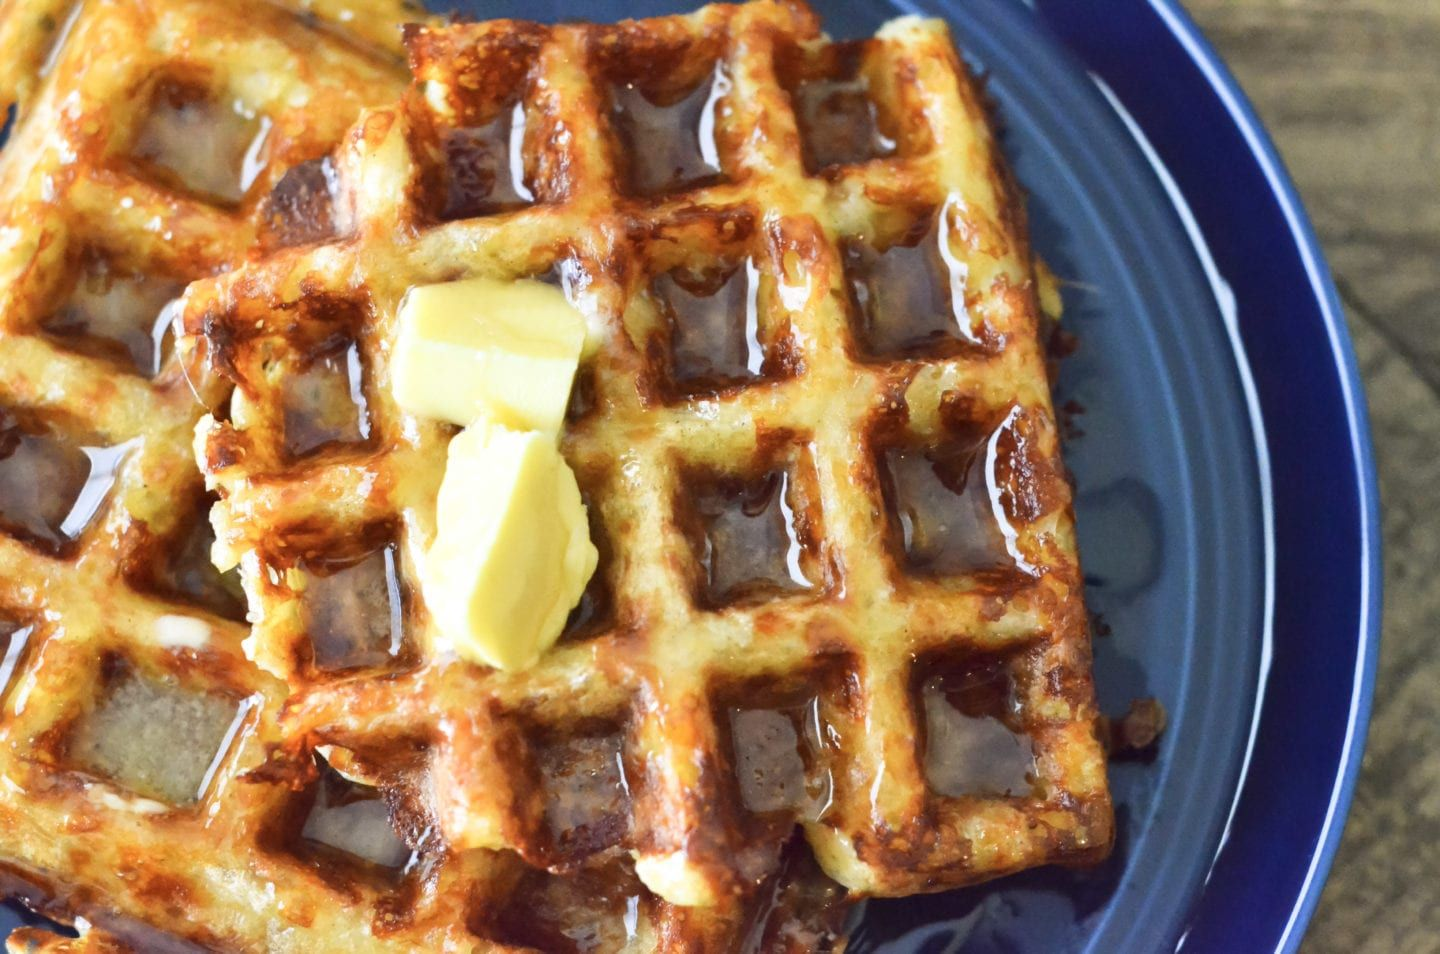 How to make grain-free, low carb keto waffles #lowcarbeating